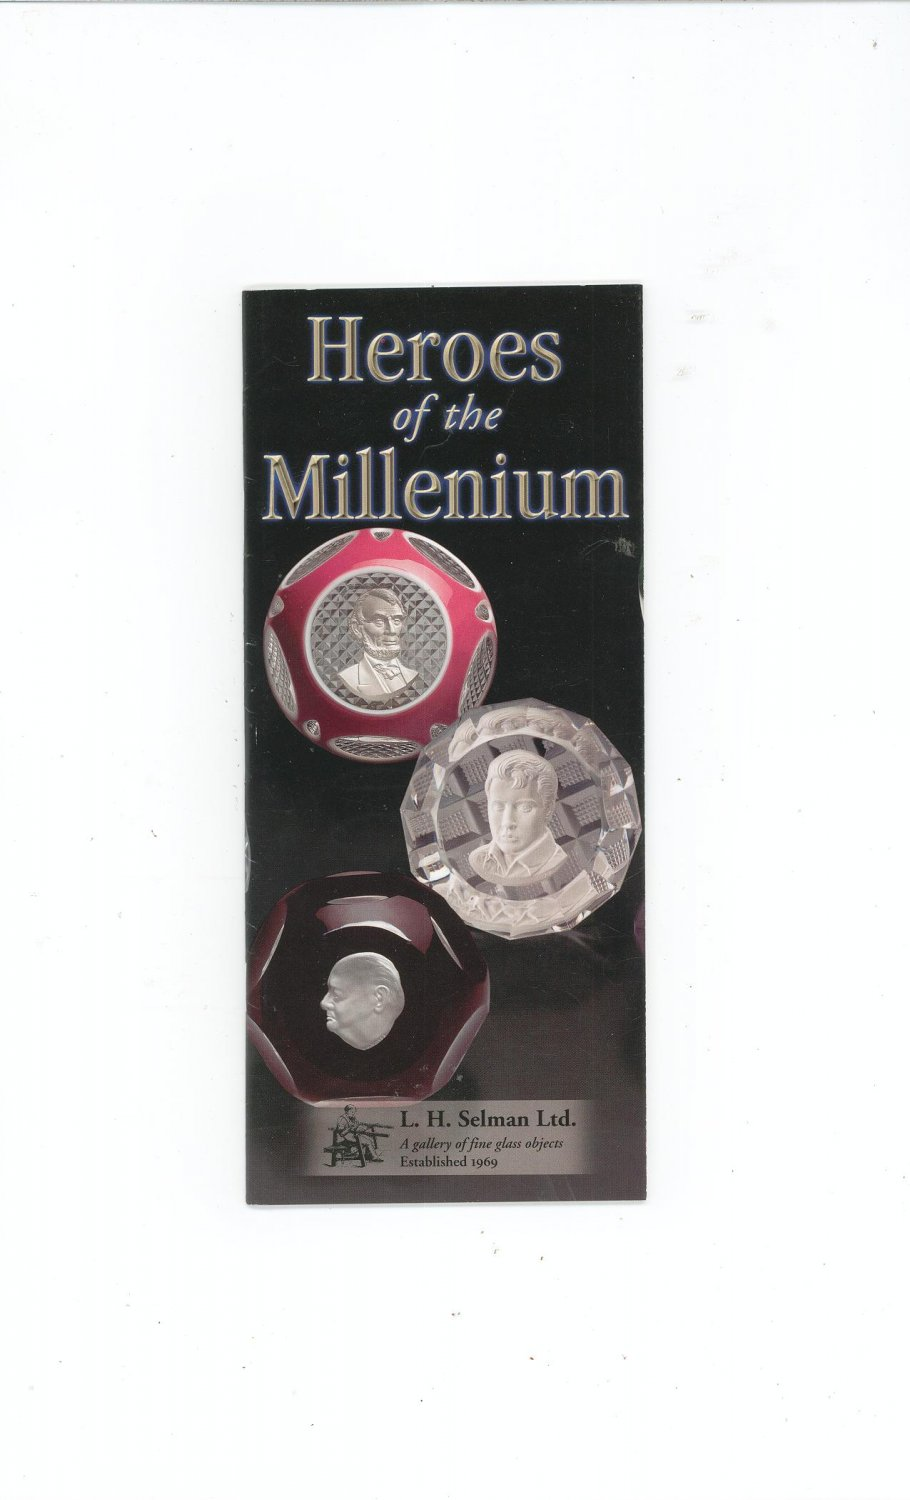 Heroes Of The Millenium Catalog / Brochure by L. H. Selman Ltd. Paperweights